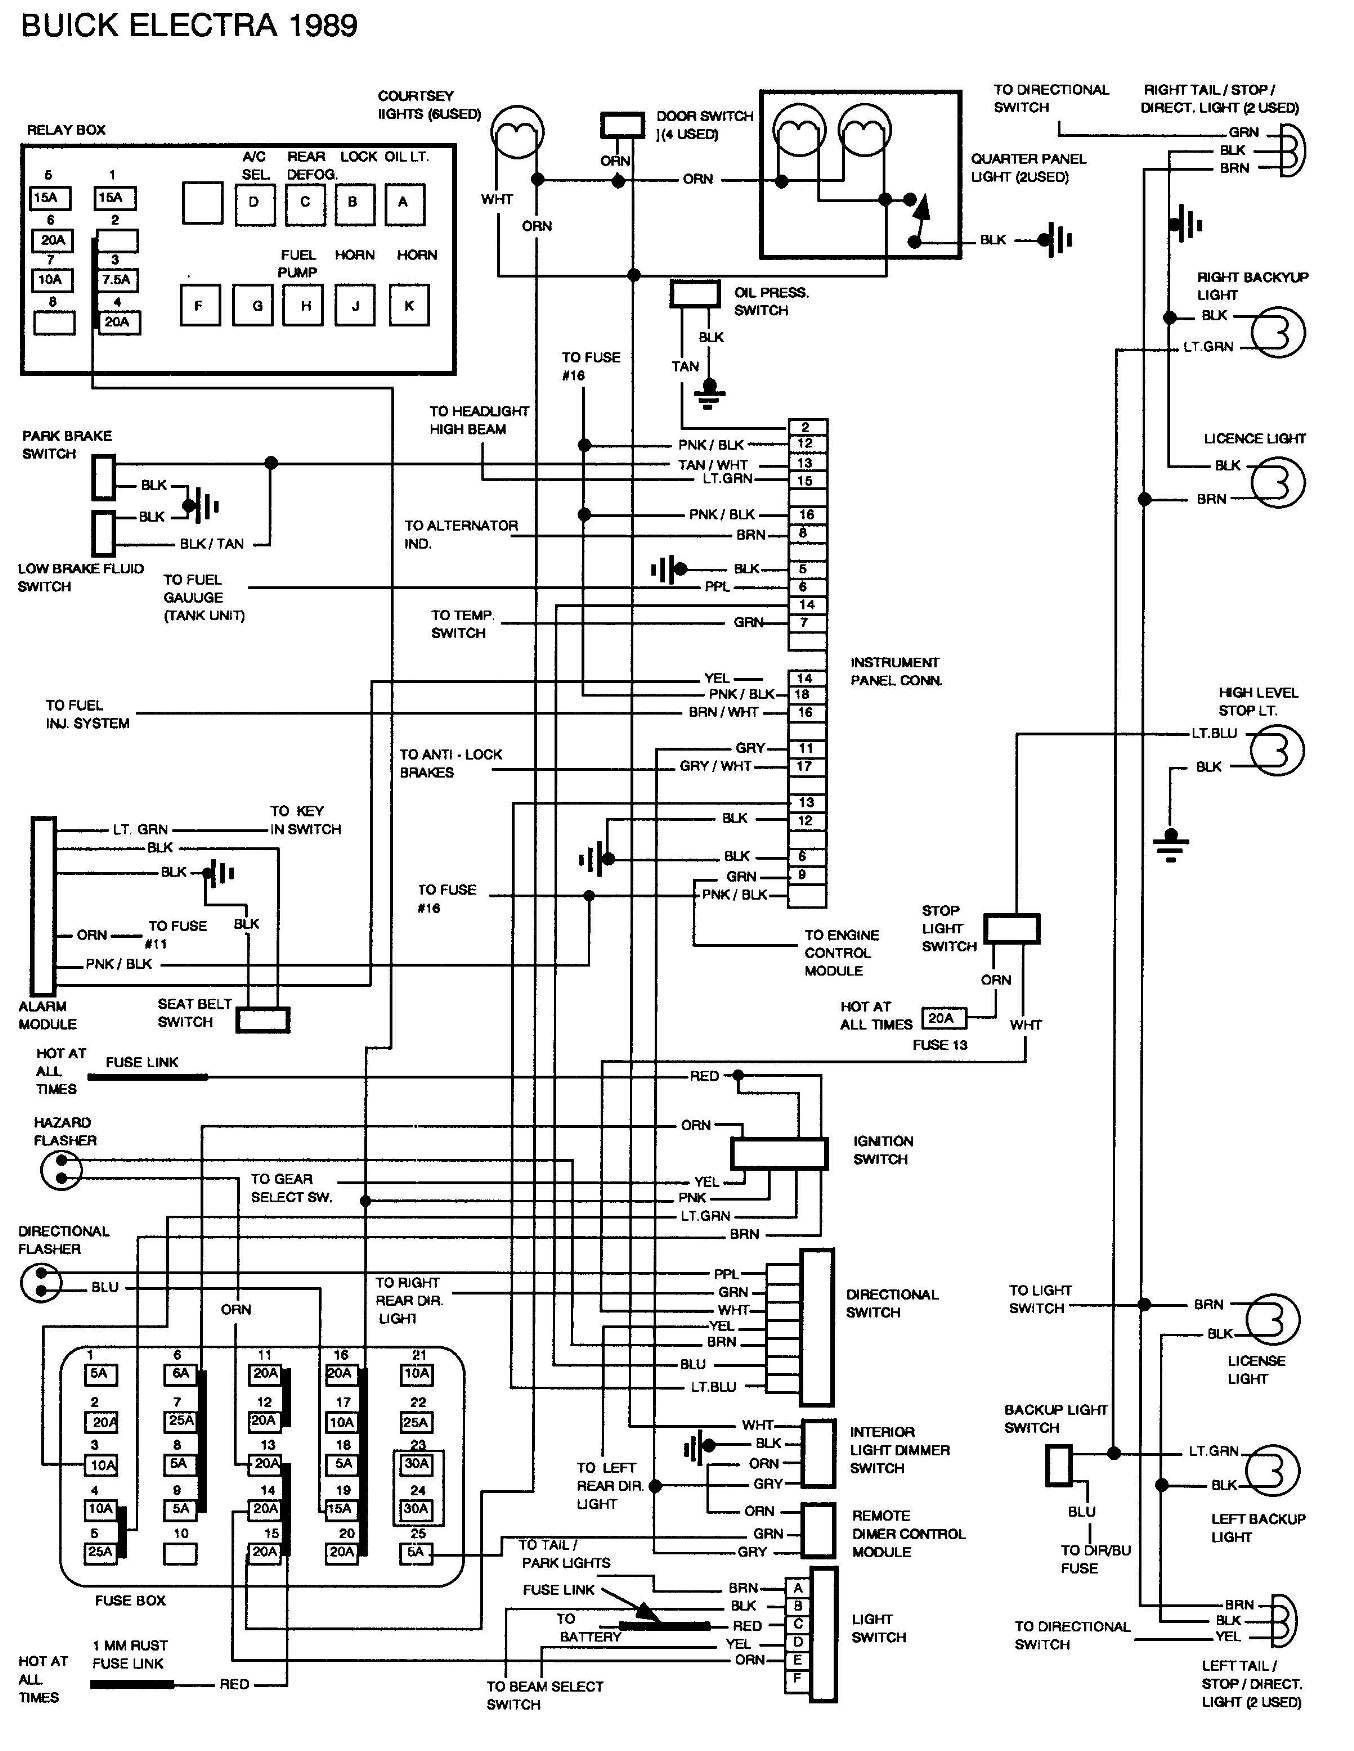 45 Lovely Omron Relay Wiring Diagram Buick Lesabre Electrical Wiring Diagram Electrical Diagram